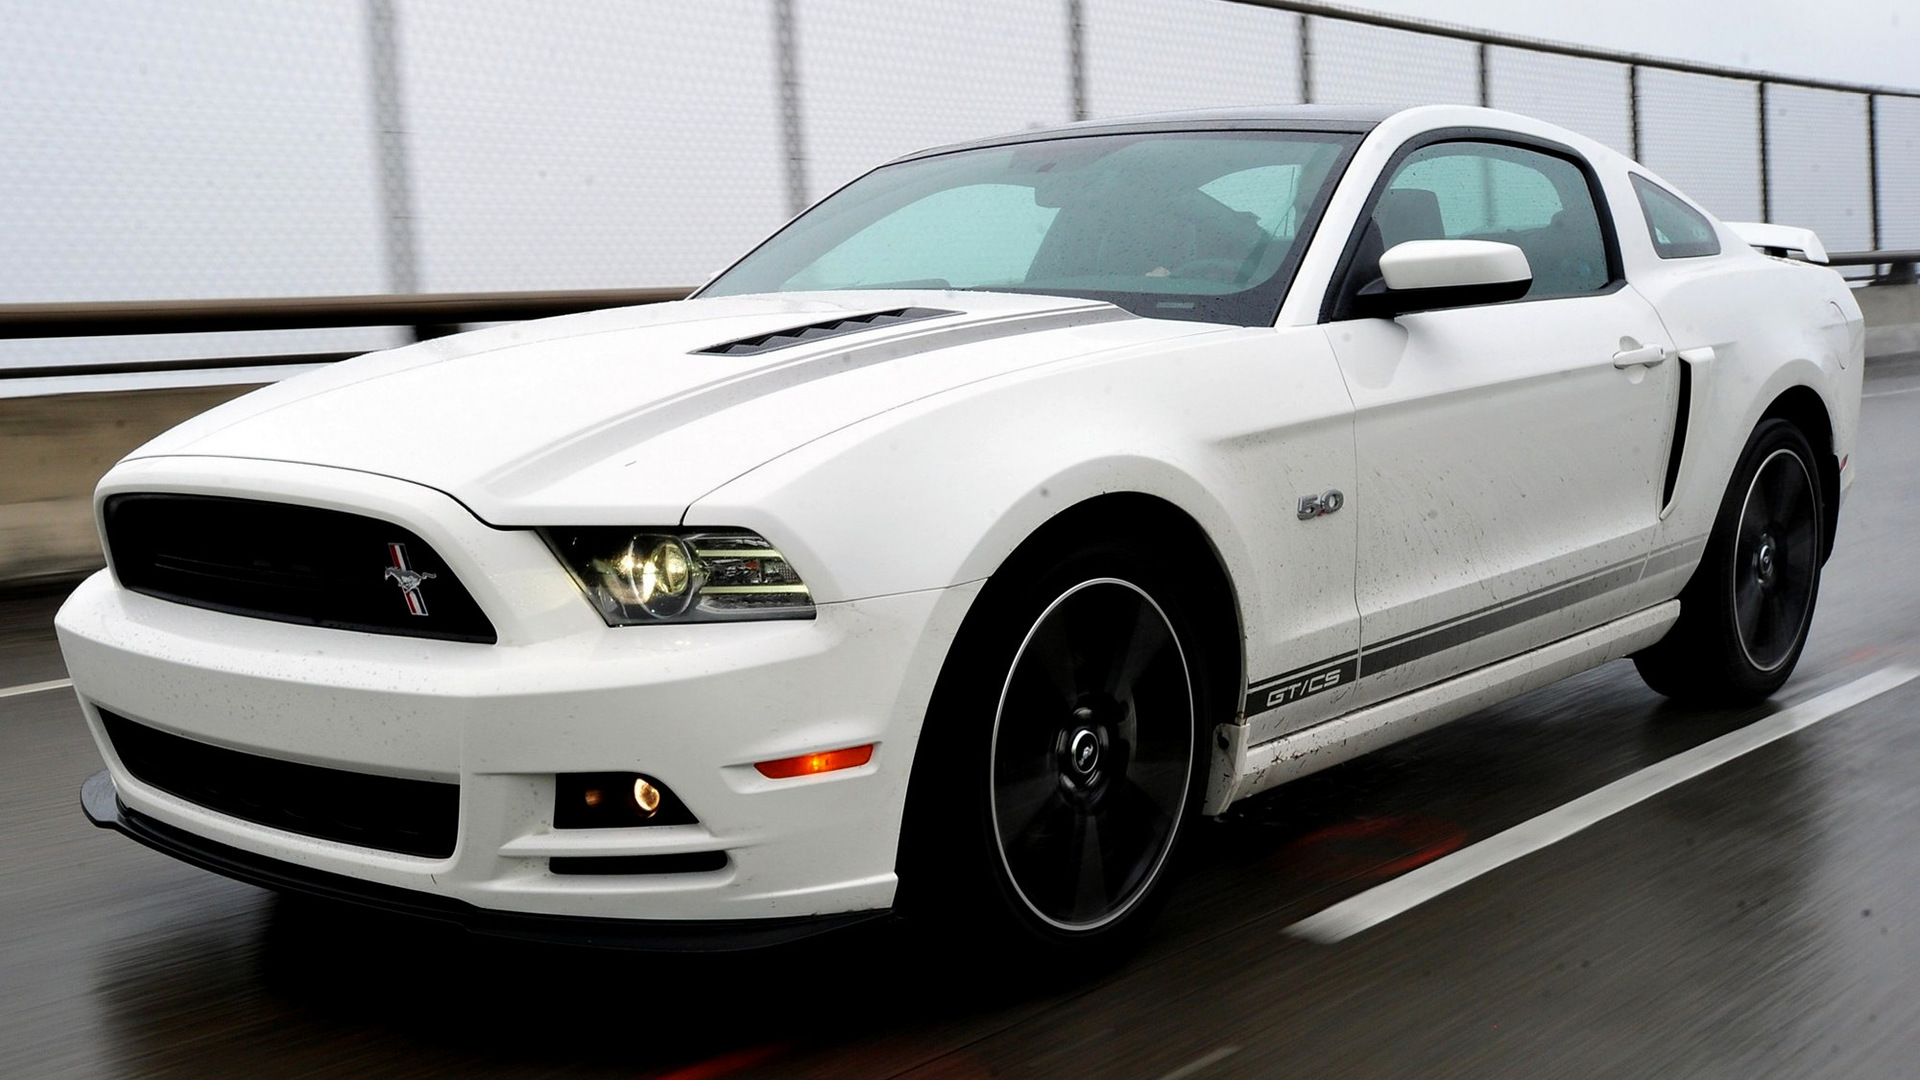 ford mustang 5 0 gt california special 2012 wallpapers. Black Bedroom Furniture Sets. Home Design Ideas